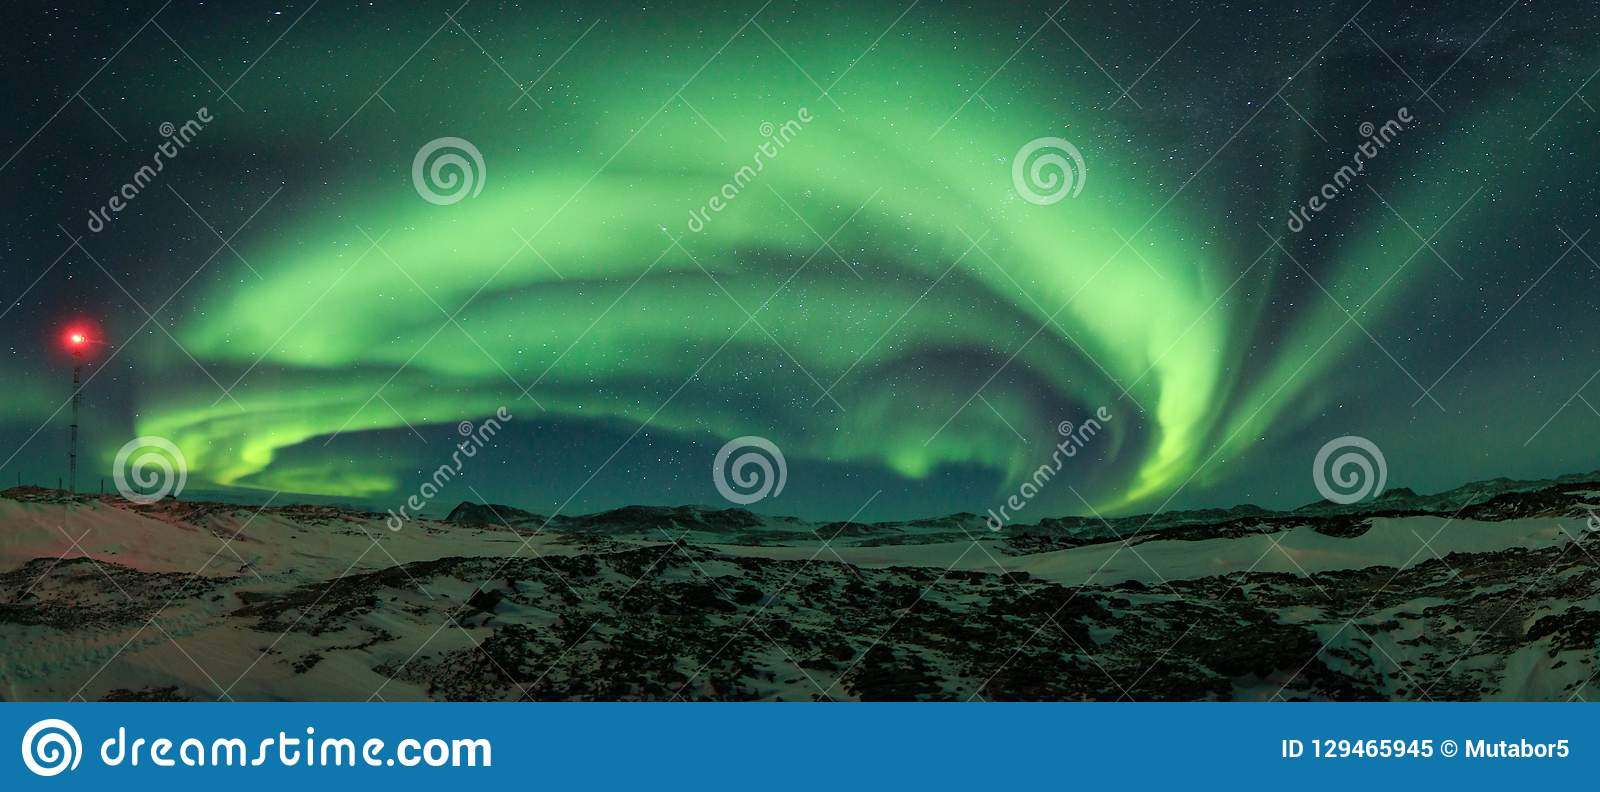 Bright colorful northern lights in the night sky.